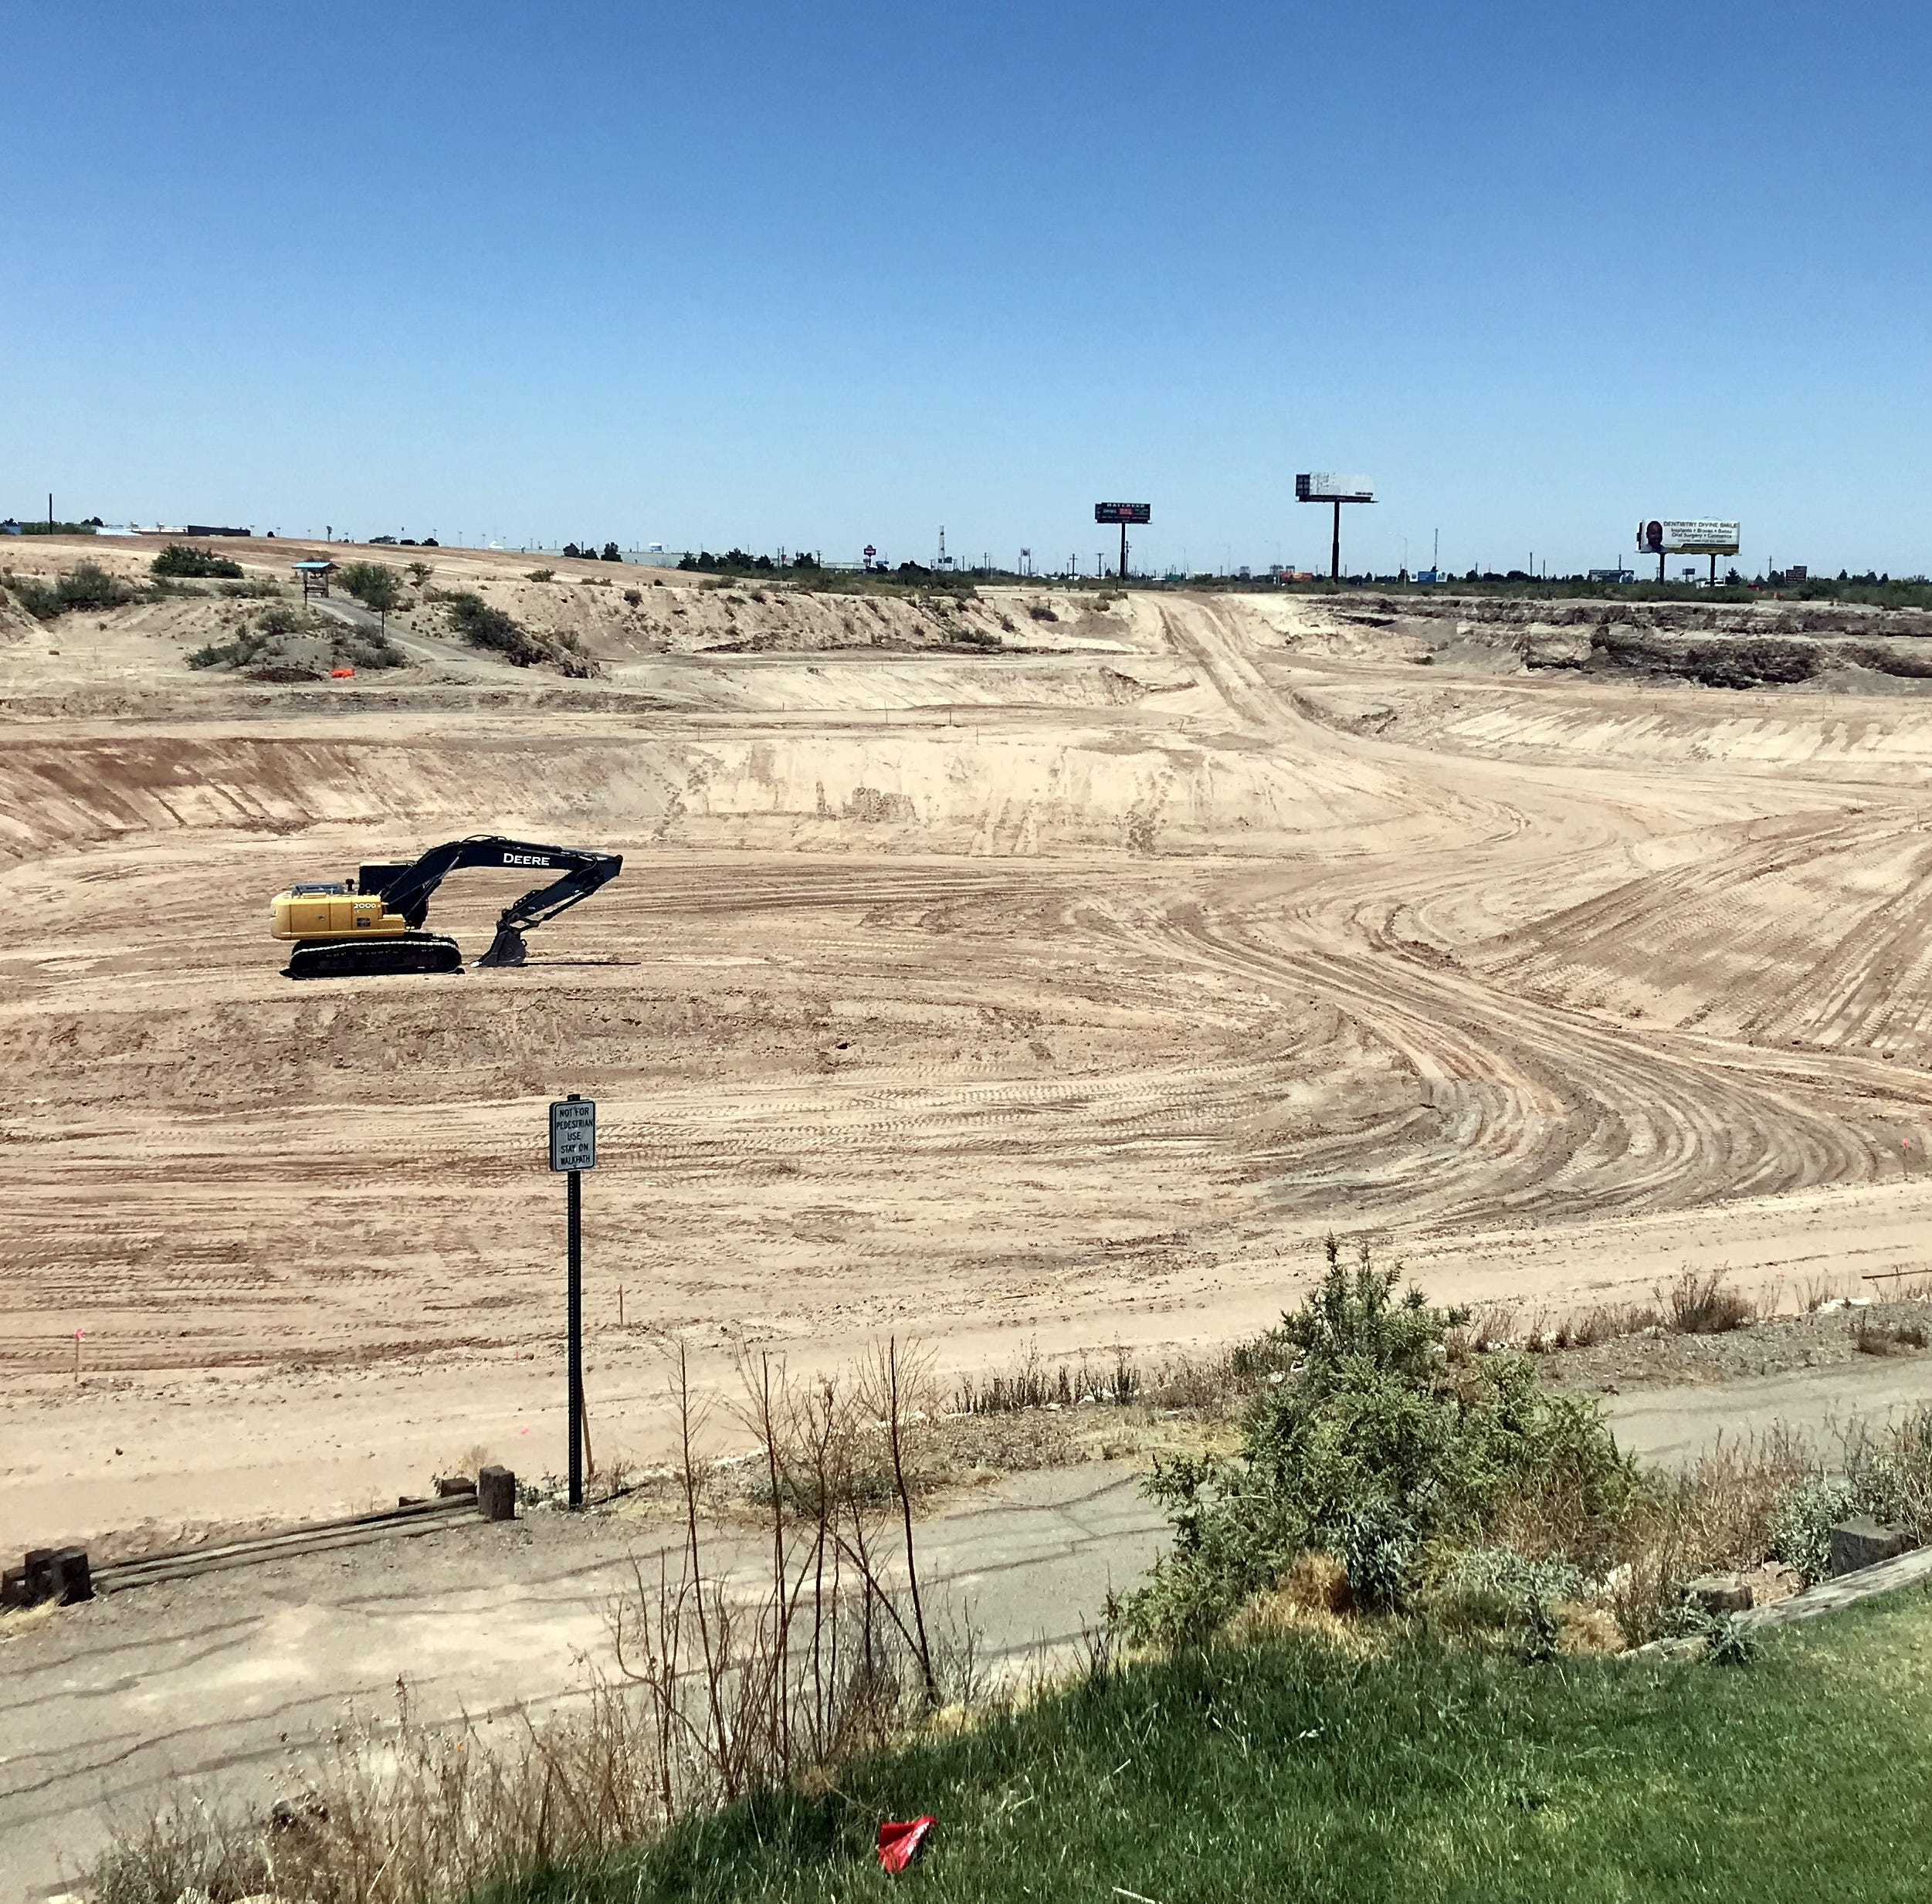 City officials give update on pond construction at Voiers 'Pit' Park in Deming, NM